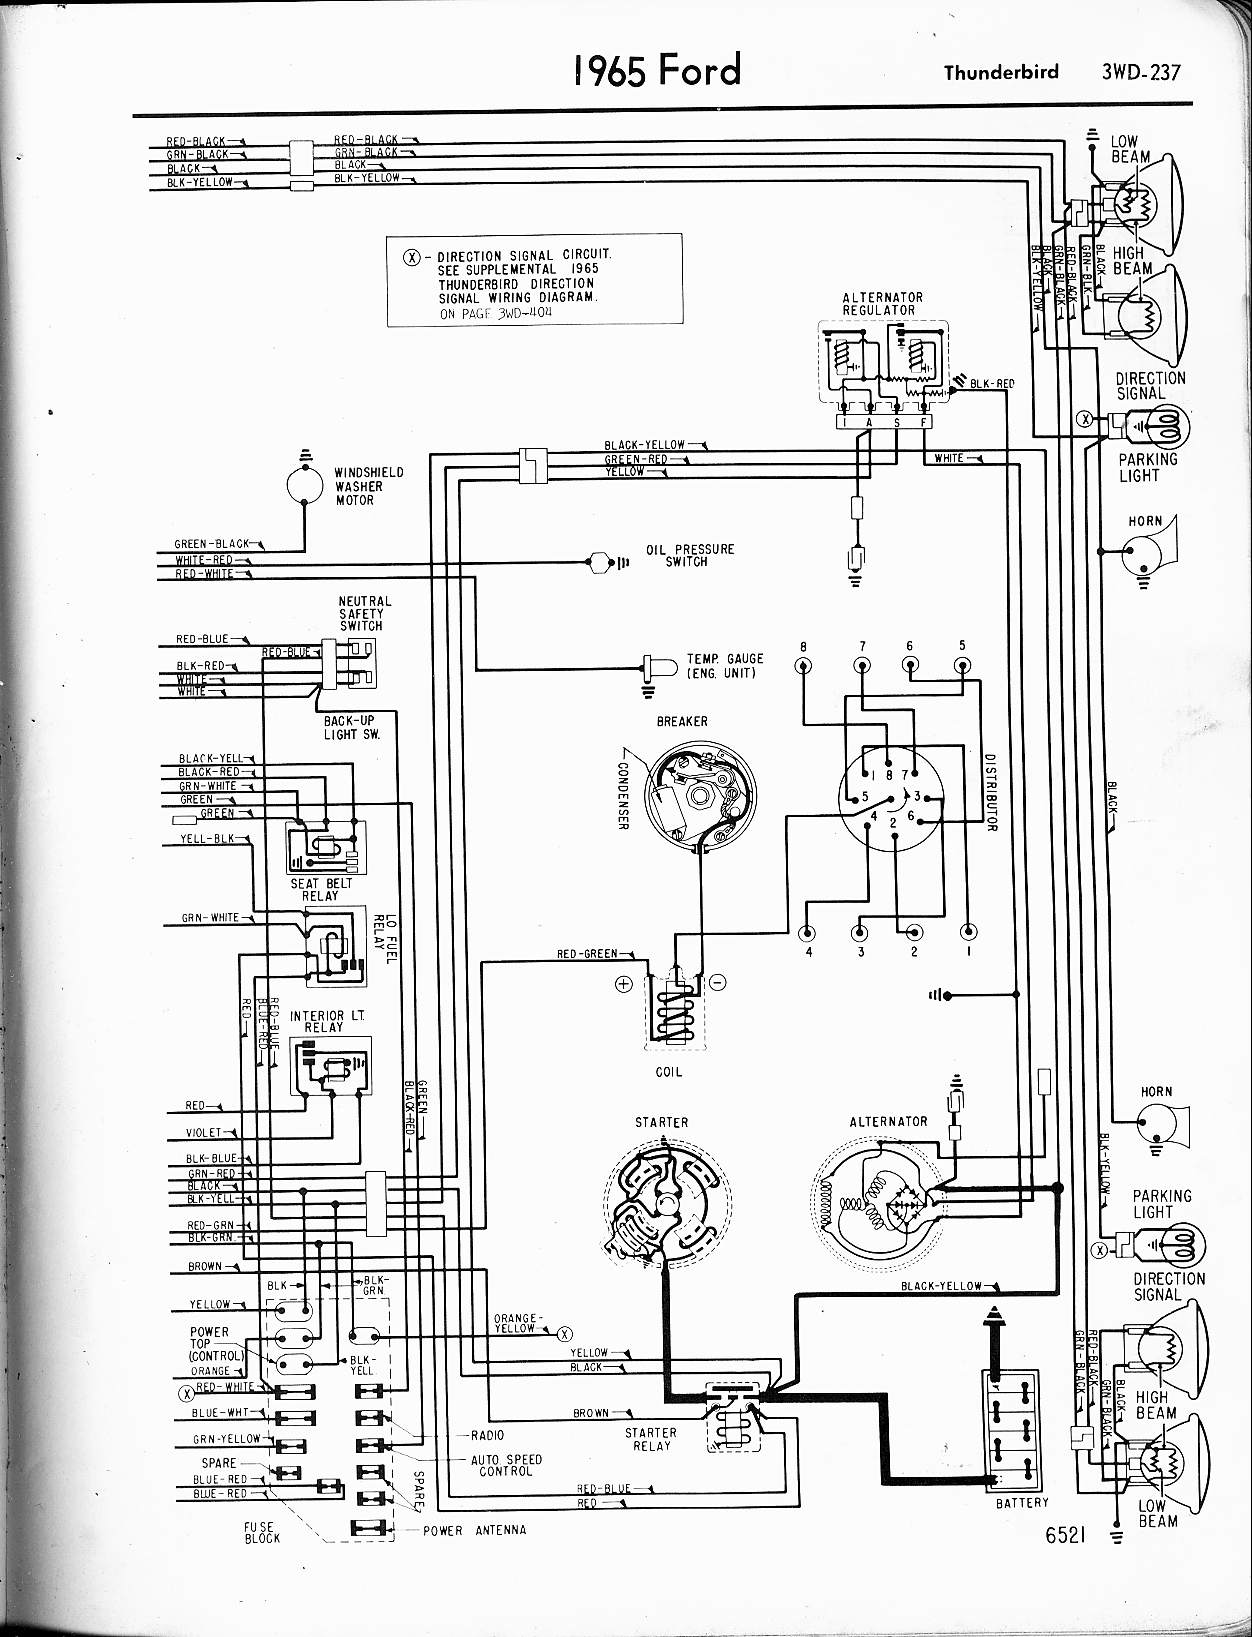 1970 Thunderbird Instrument Cluster Diagram Wiring Schematic 1969 Firebird Fuse Box 57 65 Ford Diagrams Camaro